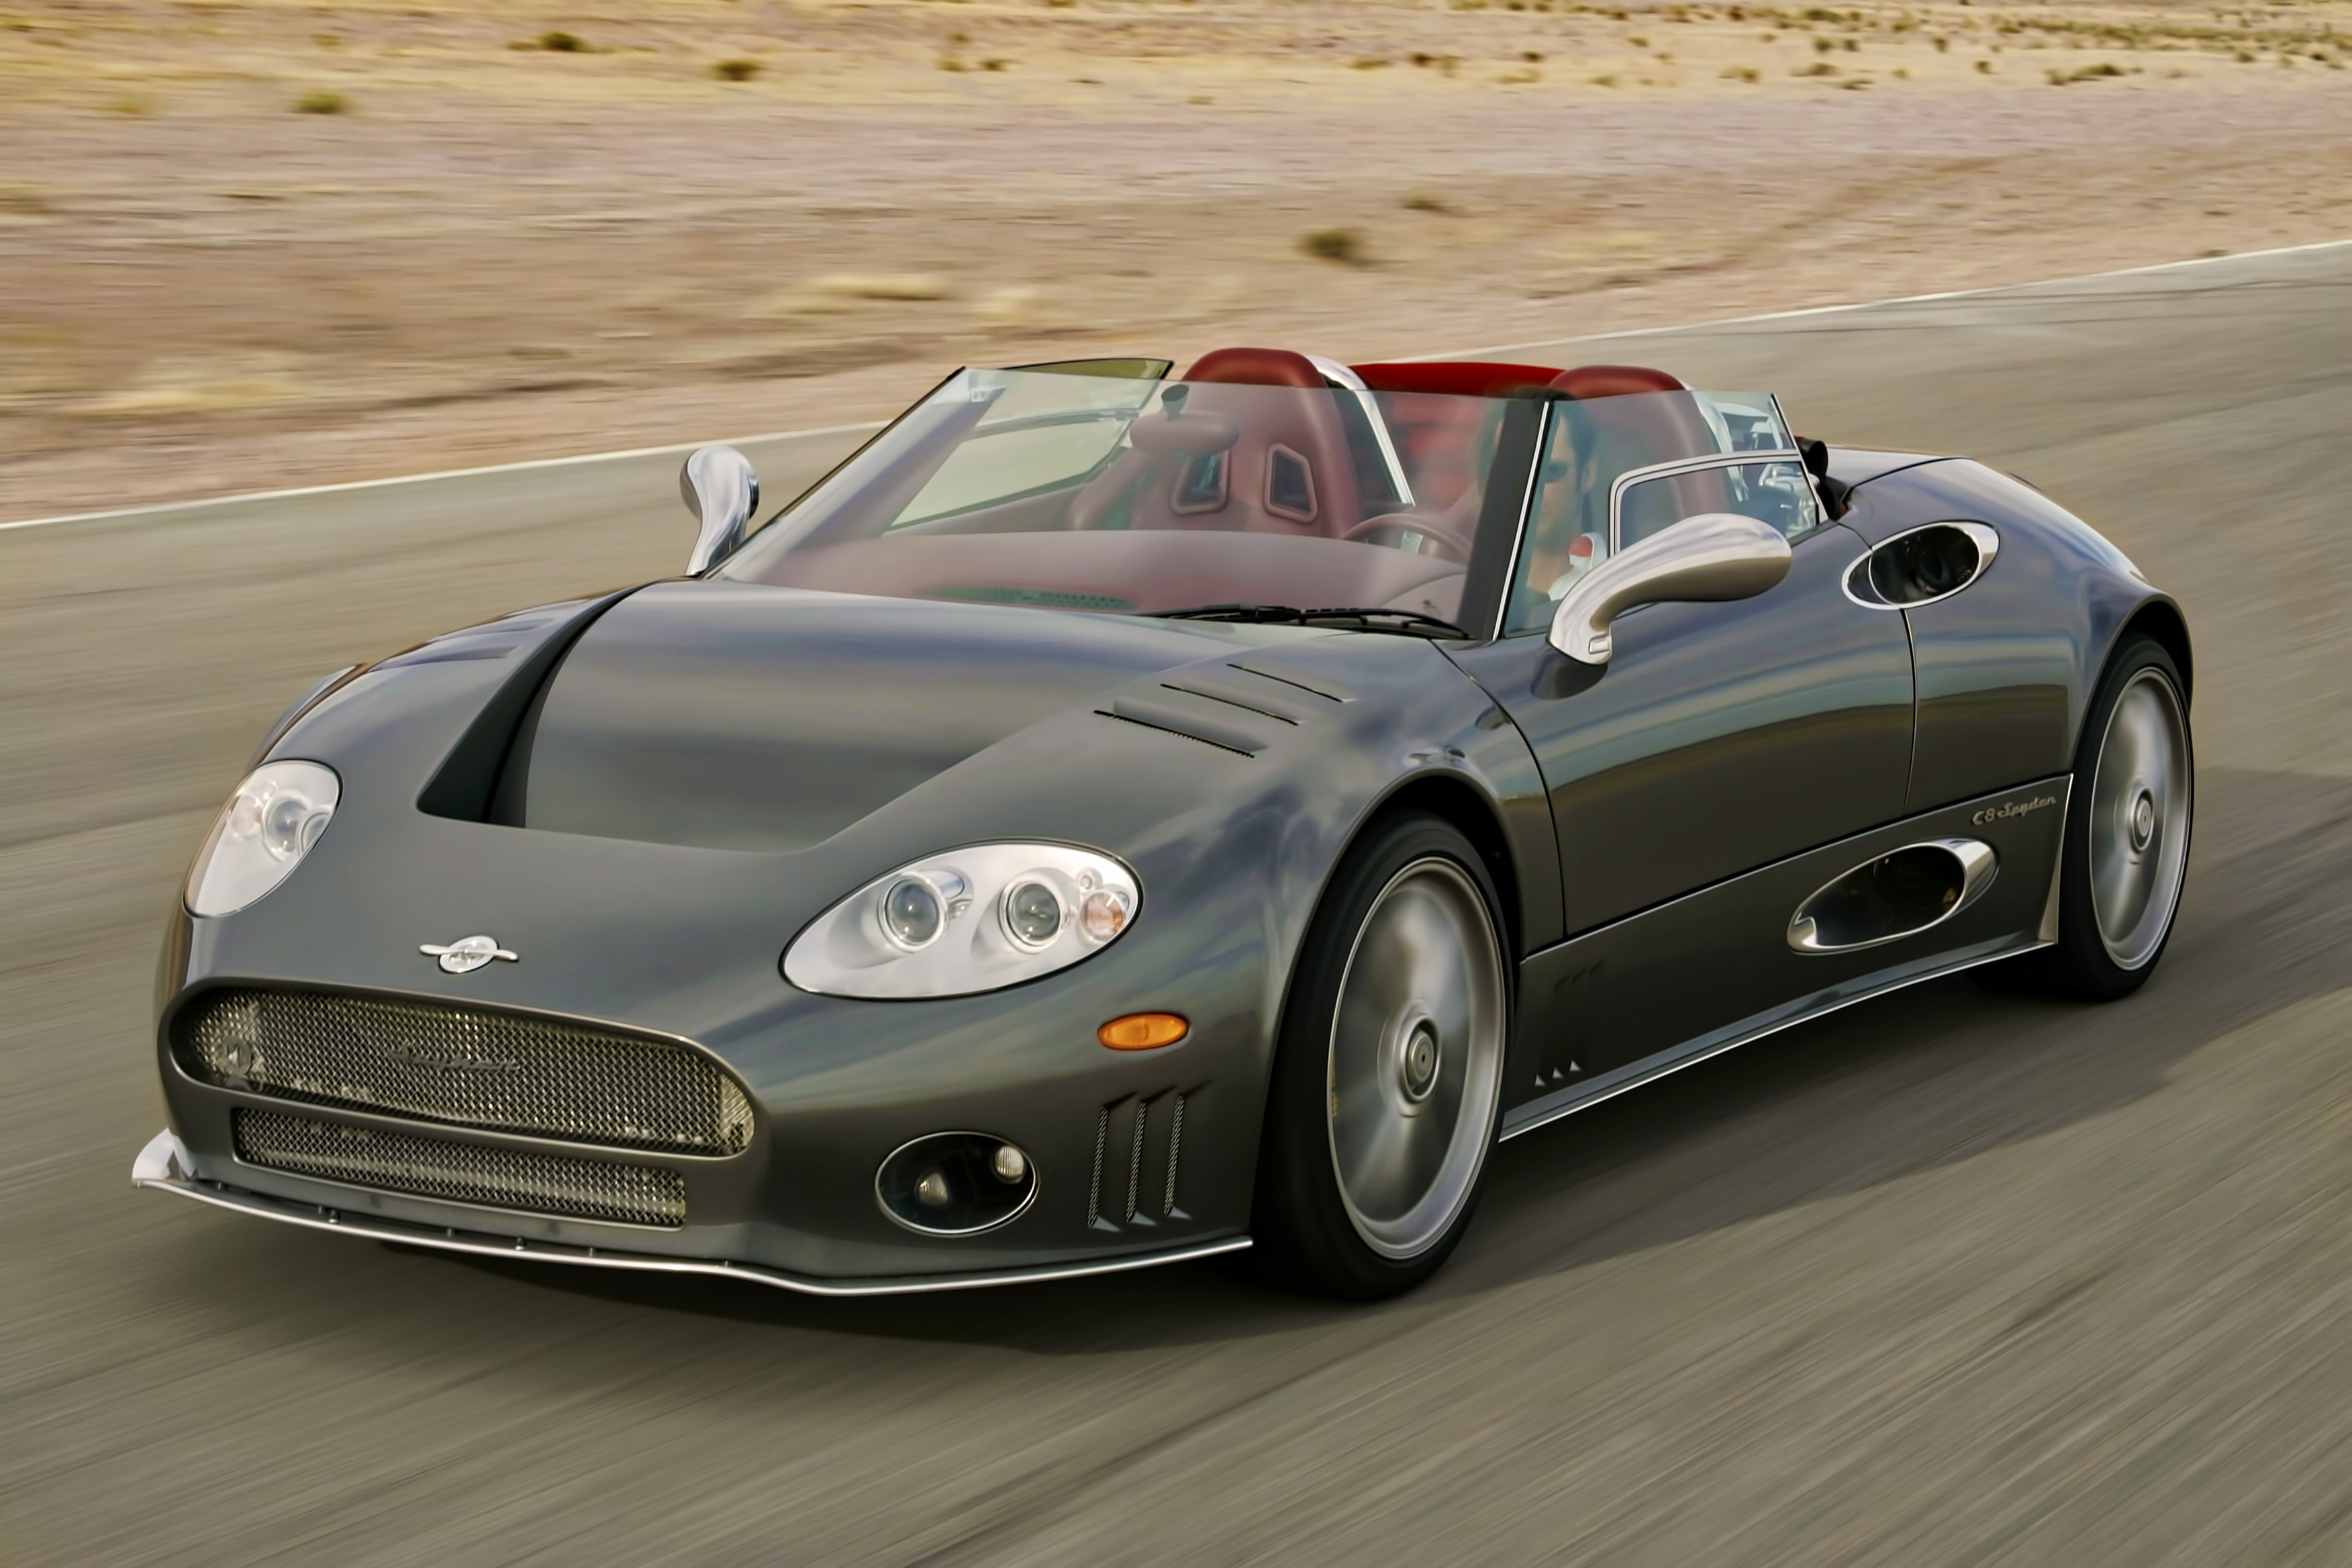 Spyker C8 photographed using a gyro image stabilizer